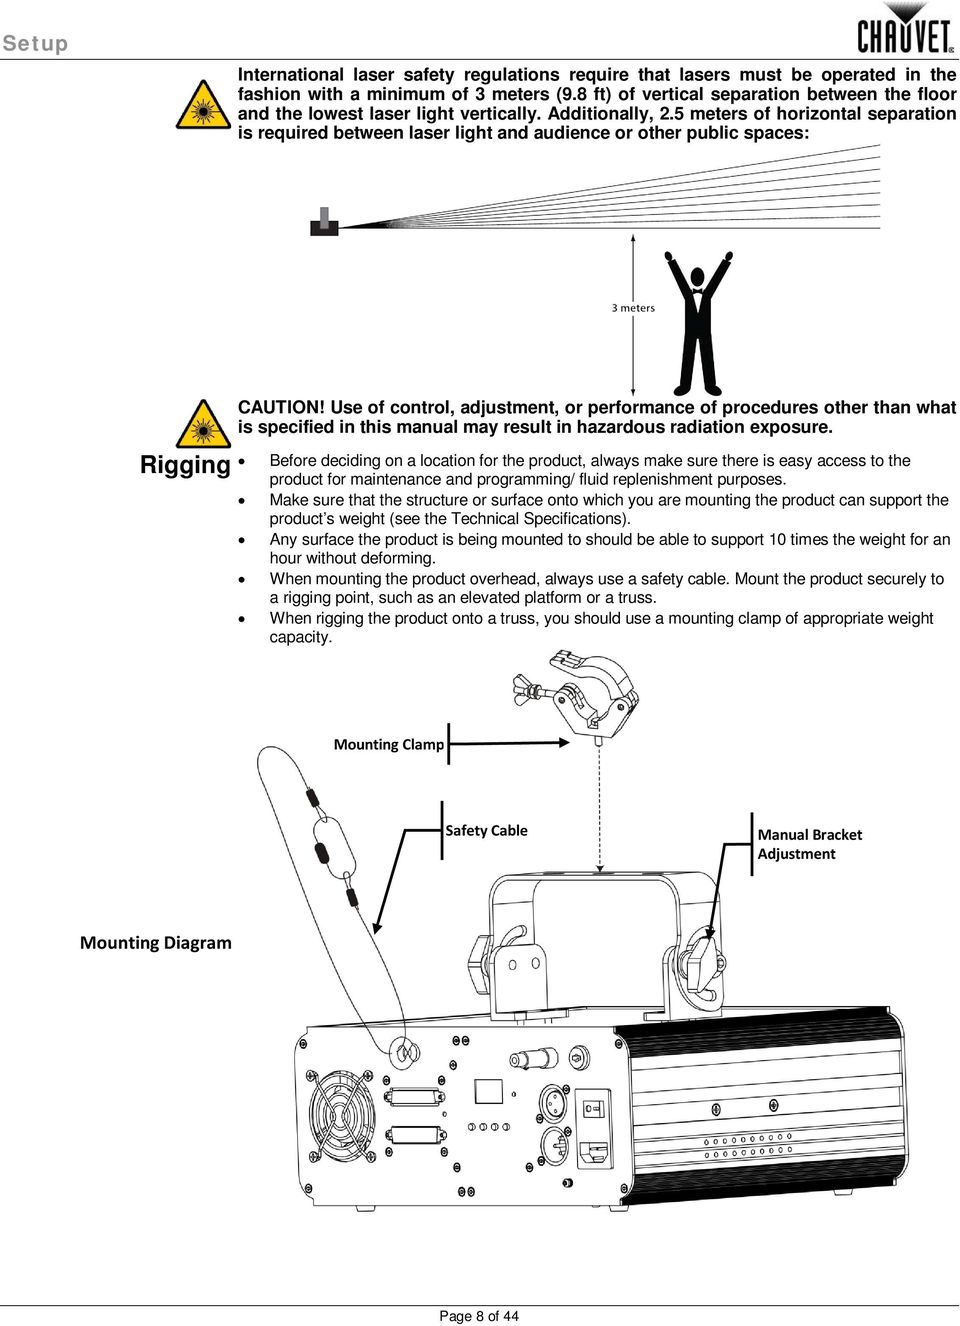 5 meters of horizontal separation is required between laser light and audience or other public spaces: Rigging CAUTION!